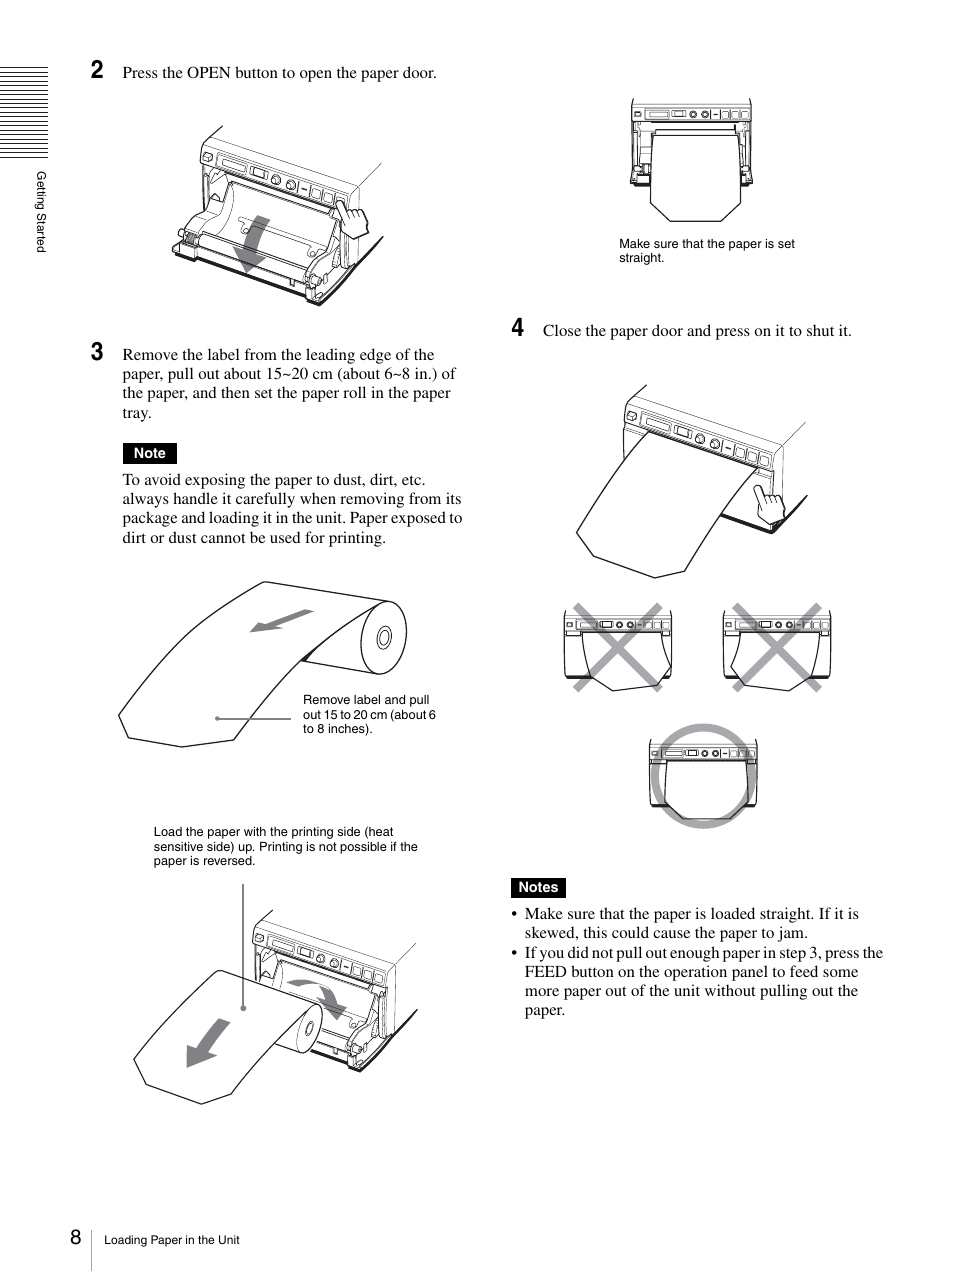 On (8, Tton (8, 14) | Sony UP-D897 User Manual | Page 8 / 22